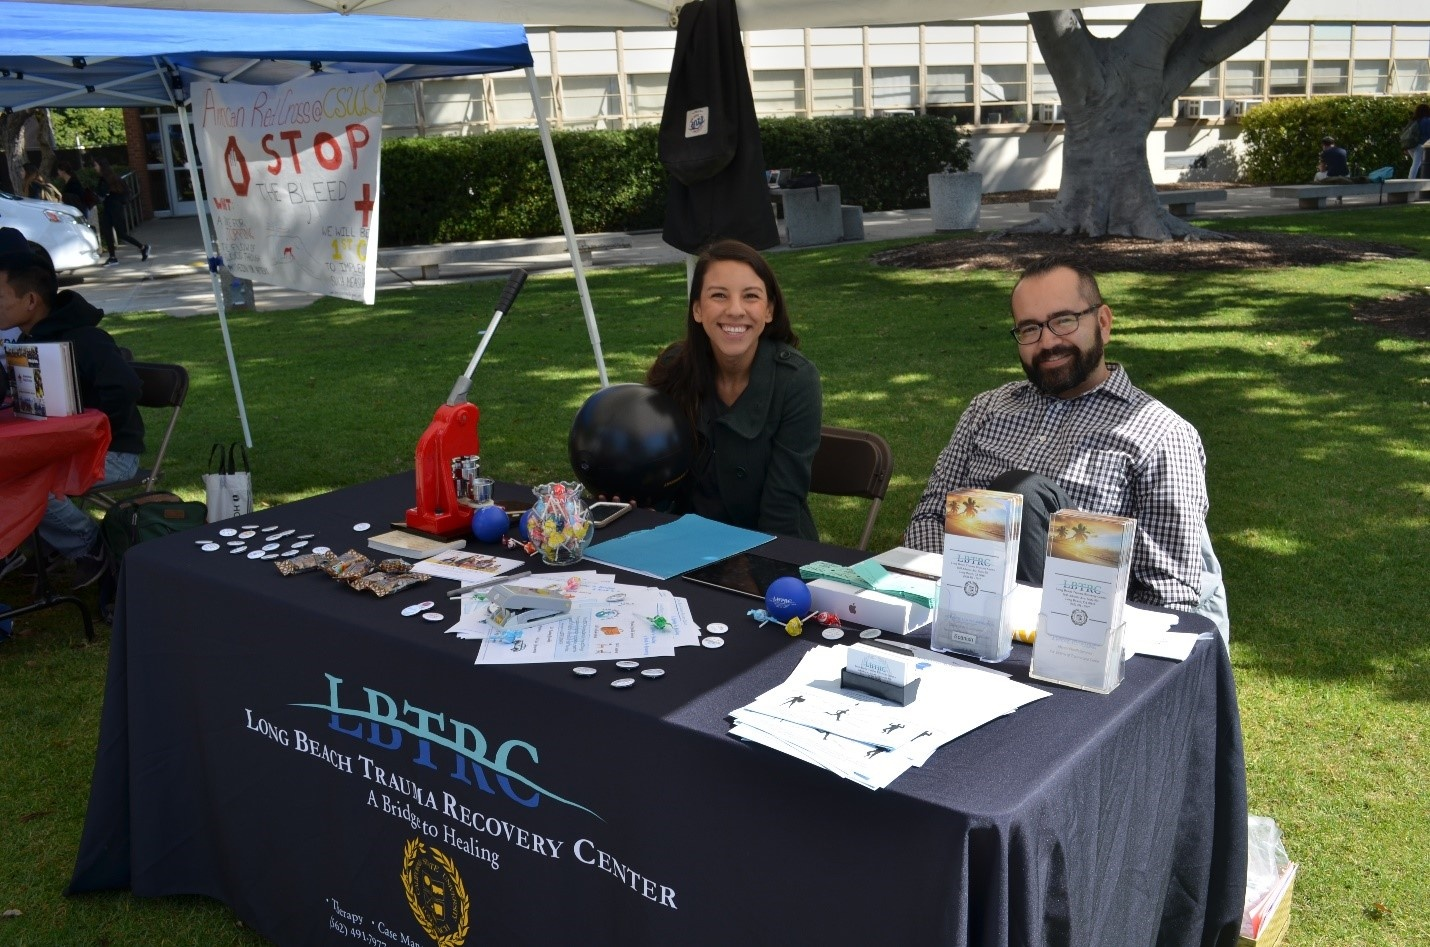 clinicians from the Long Beach Trauma Recovery Center